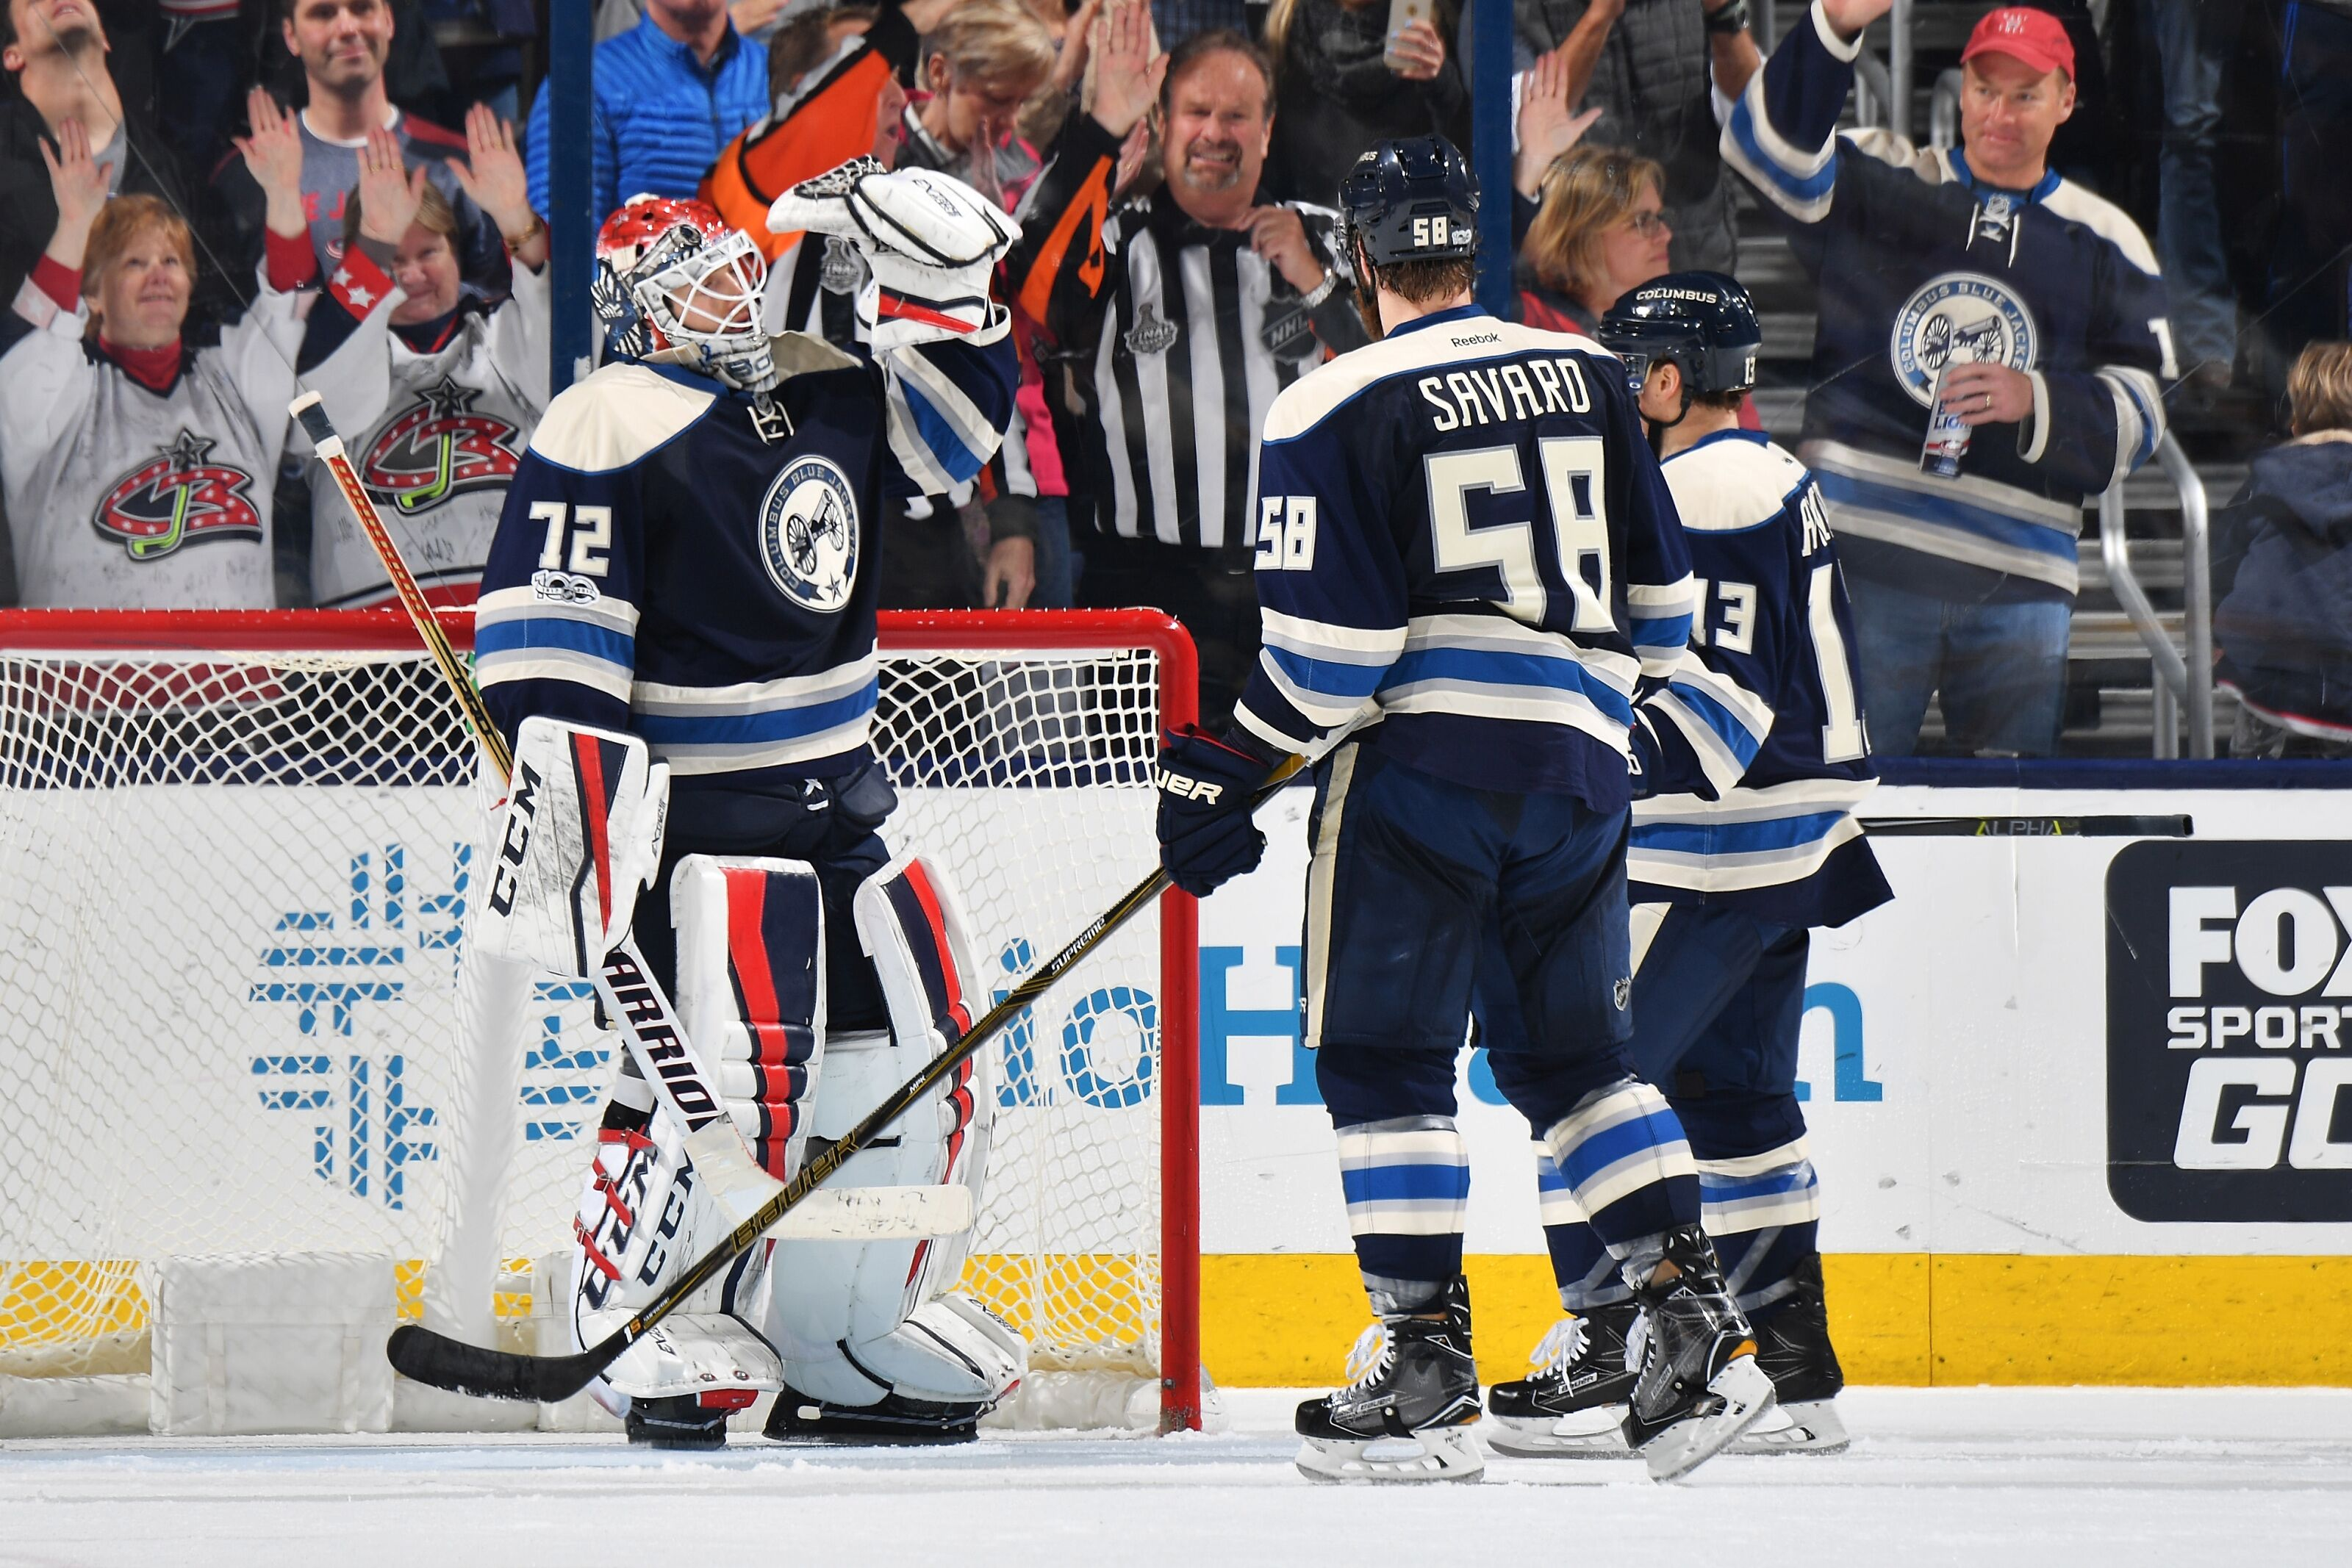 timeless design d194f 37c32 Columbus Blue Jackets: Third Jersey Looks Familiar